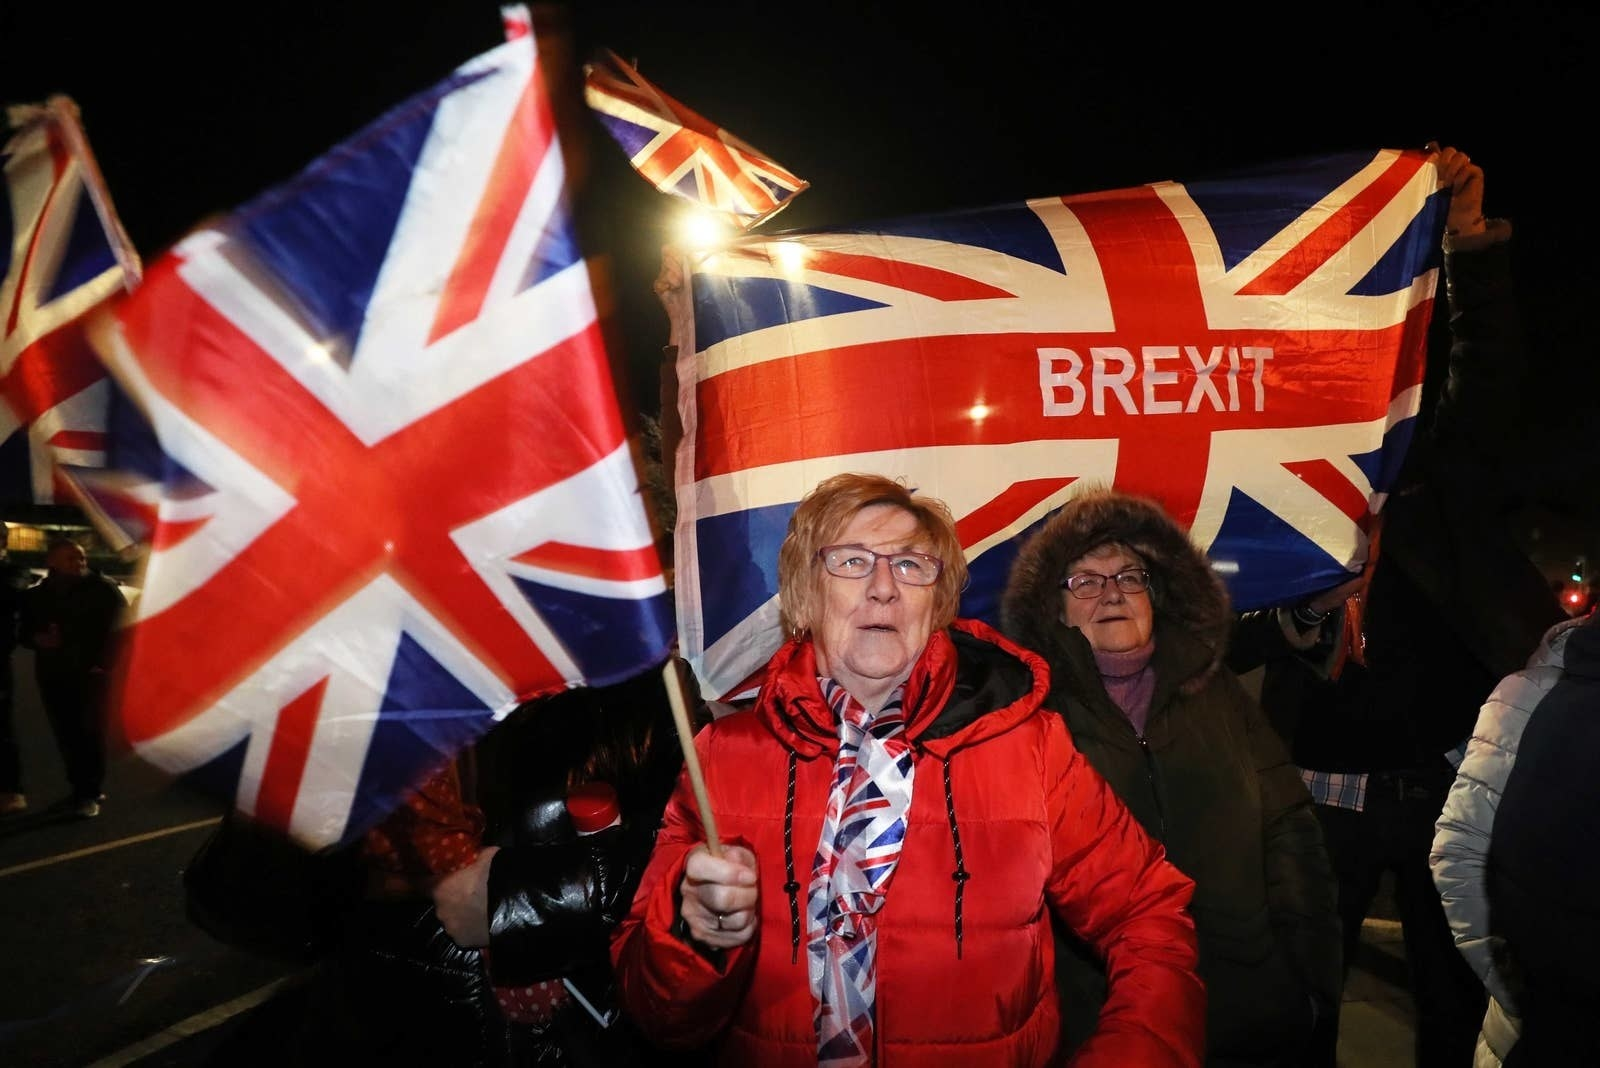 """Two women in front of UK flags, one of which reads """"BREXIT"""""""